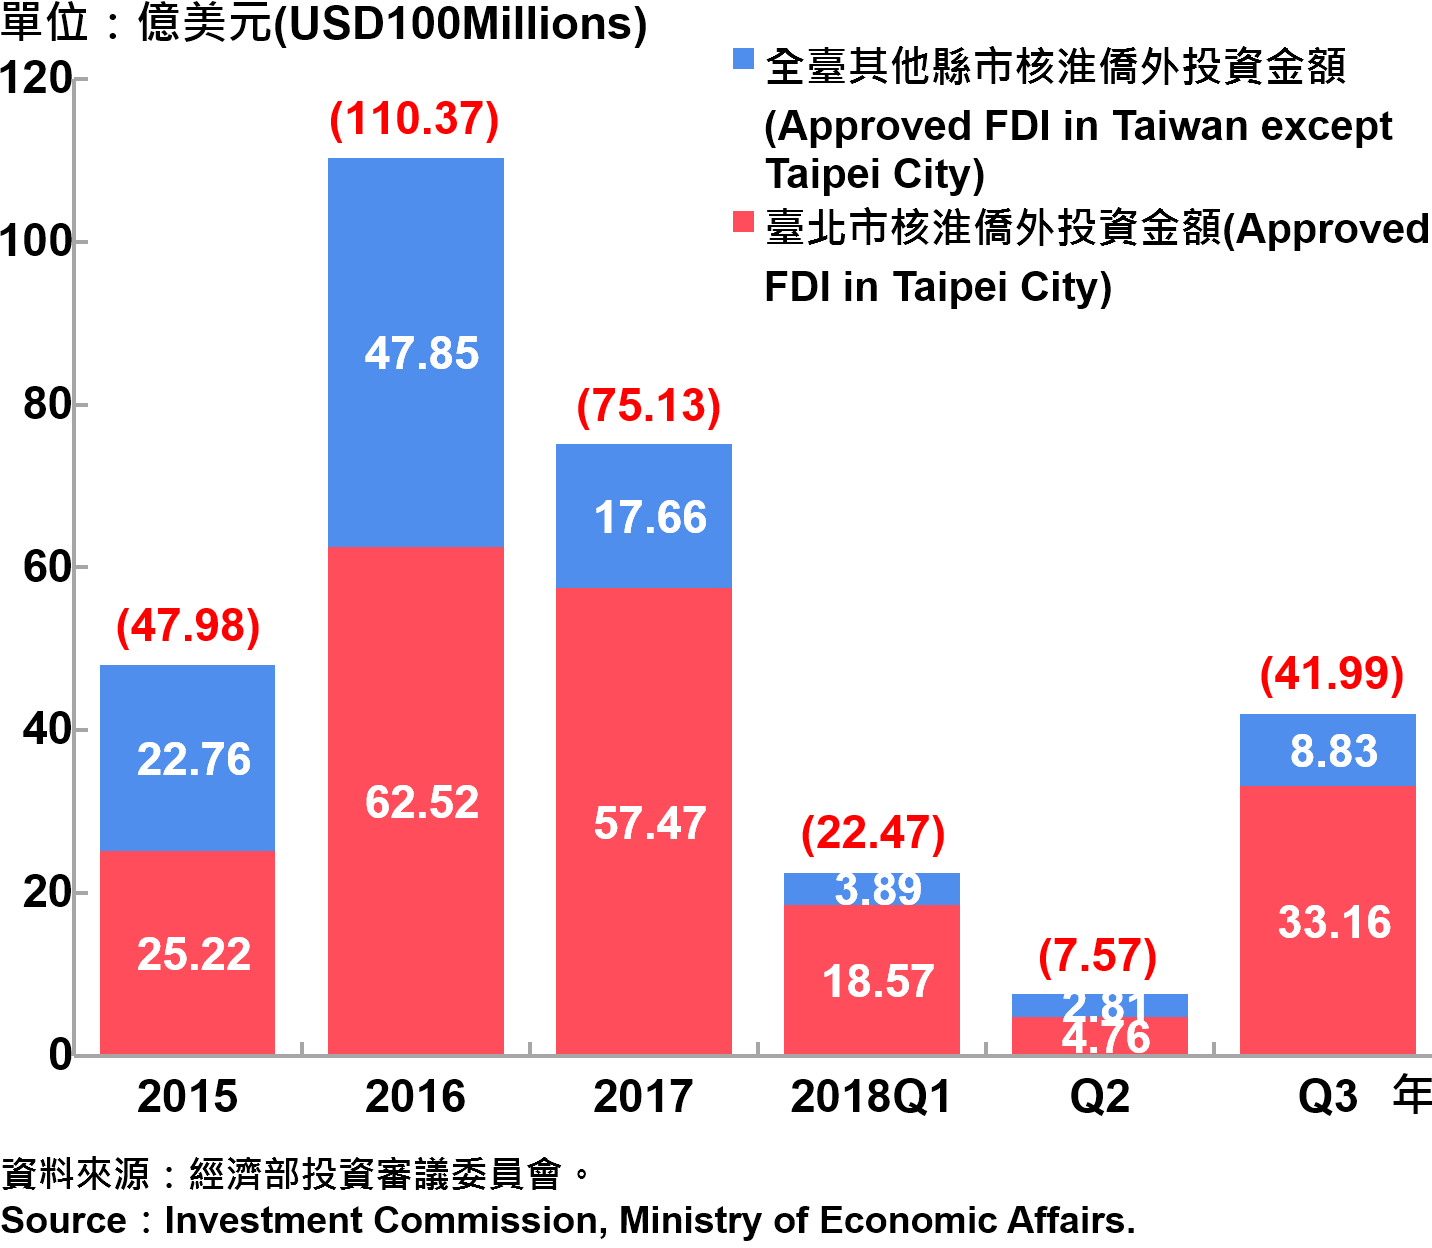 臺北市與全國僑外投資金額—2018Q3 Foreign Direct Investment (FDI) in Taipei City and Taiwan—2018Q3